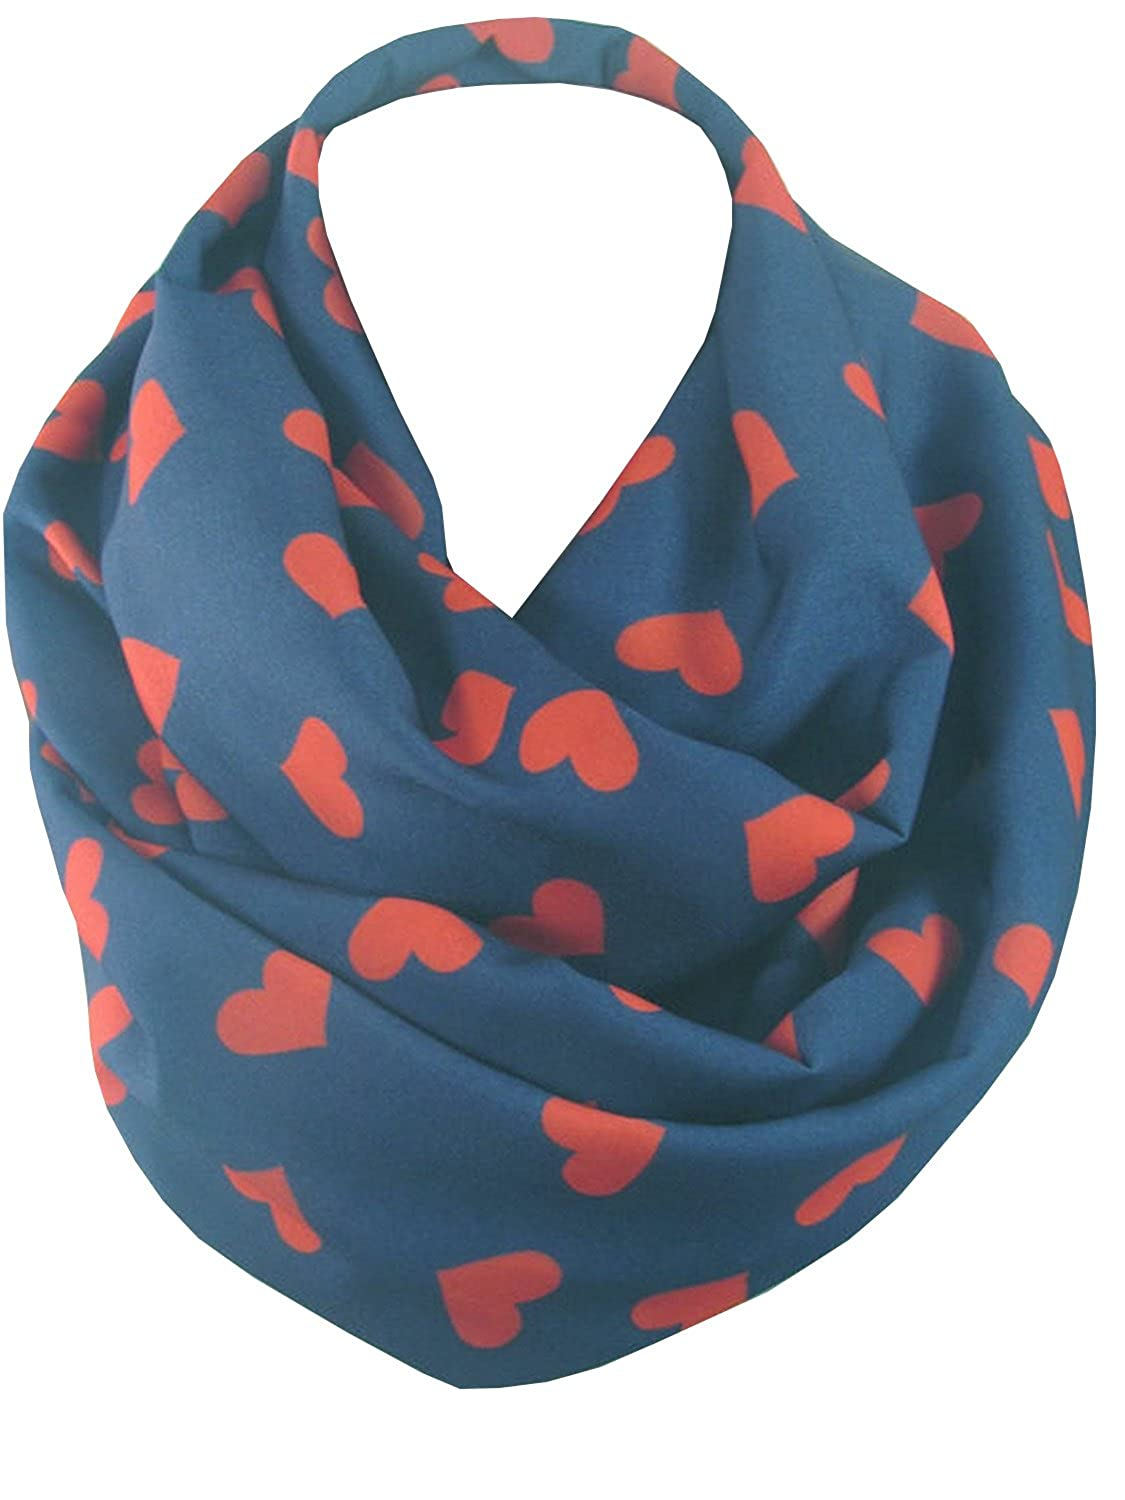 ScarfCluB Womens Heart Scarf Infinity Scarf Circle Scarf Red Hearts Scarf